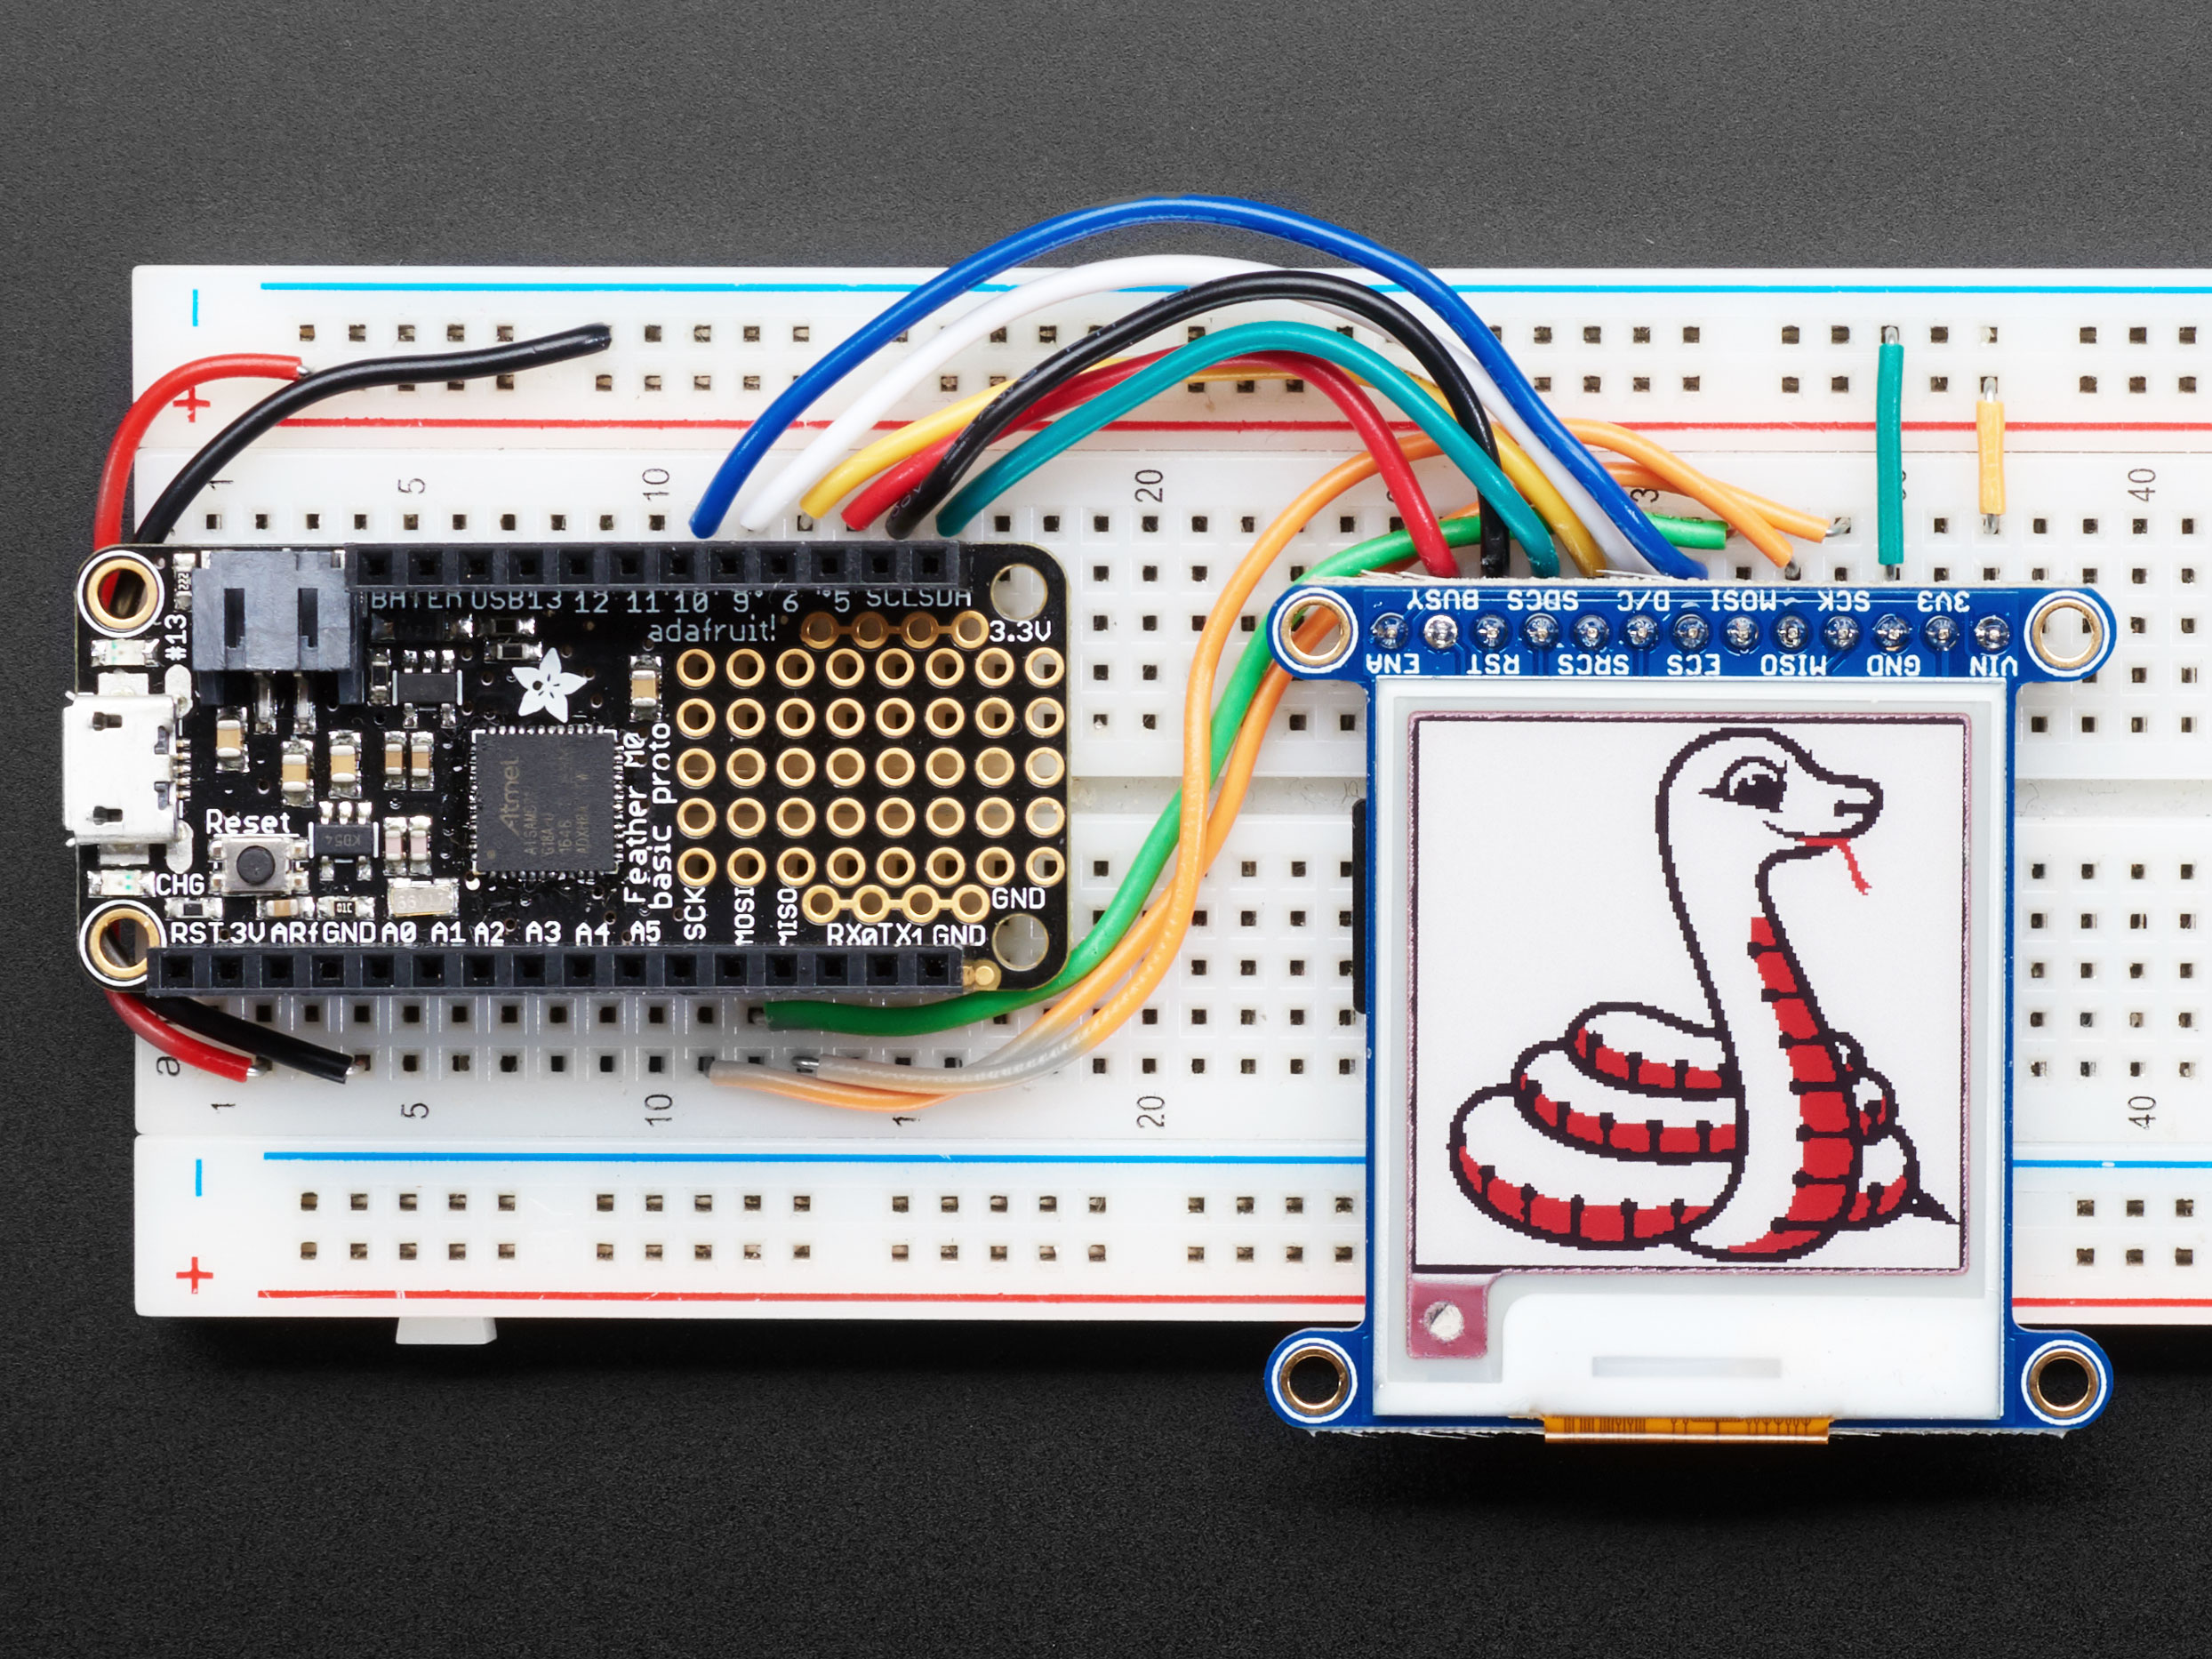 adafruit_products_demo.jpg